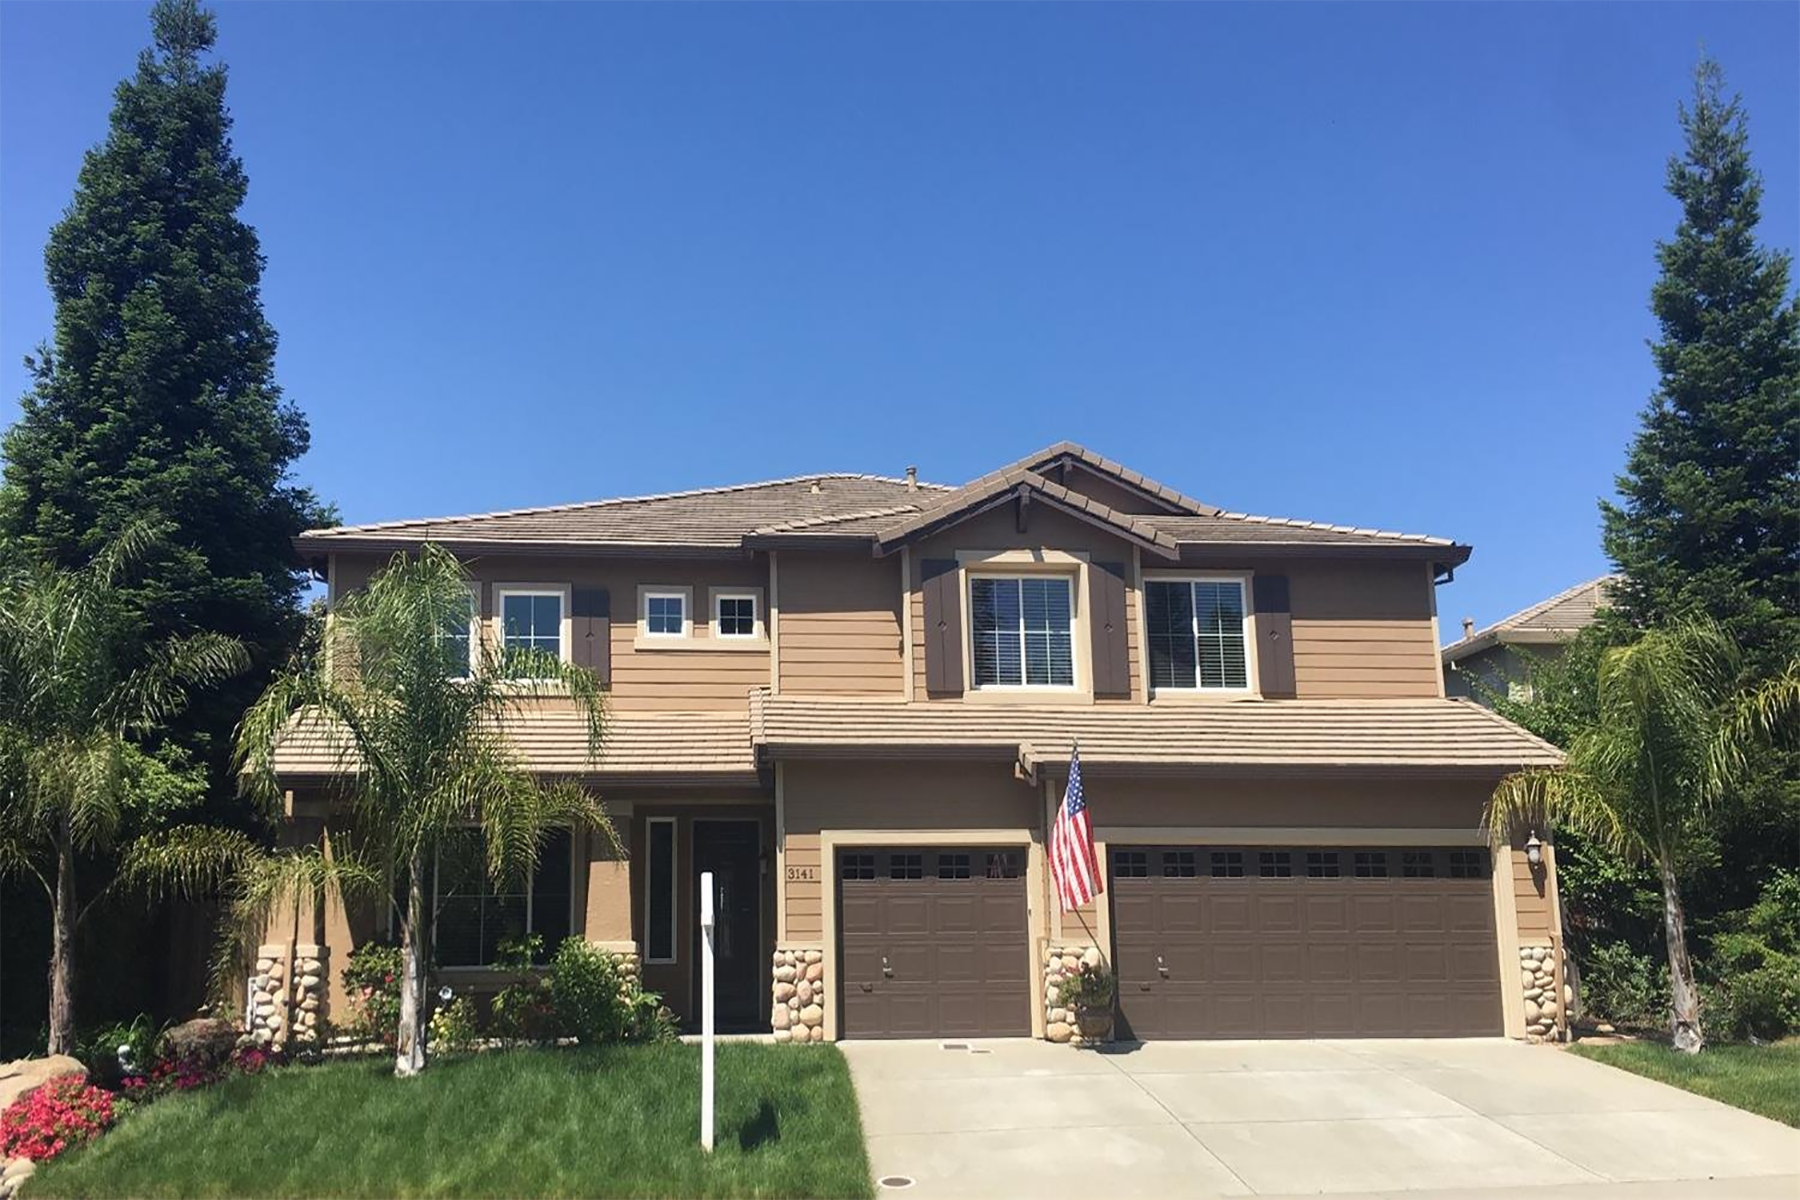 single family homes for Active at 3141 Mount Tamalpais Dr, Roseville, CA 95747 3141 Mount Tamalpais Dr Roseville, California 95747 United States